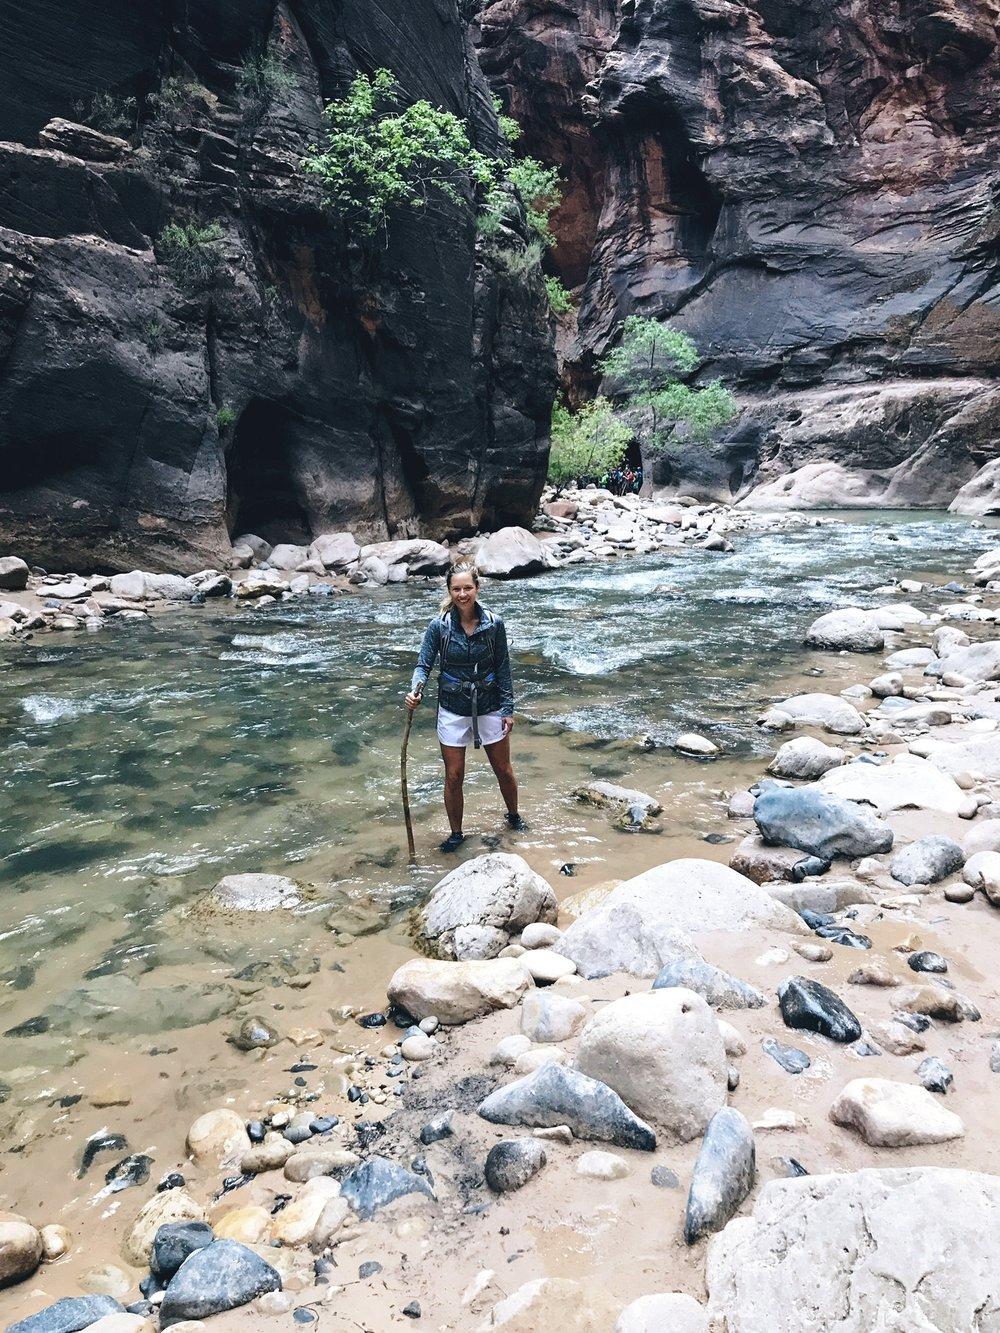 A hiking stick is a necessity in the Narrows